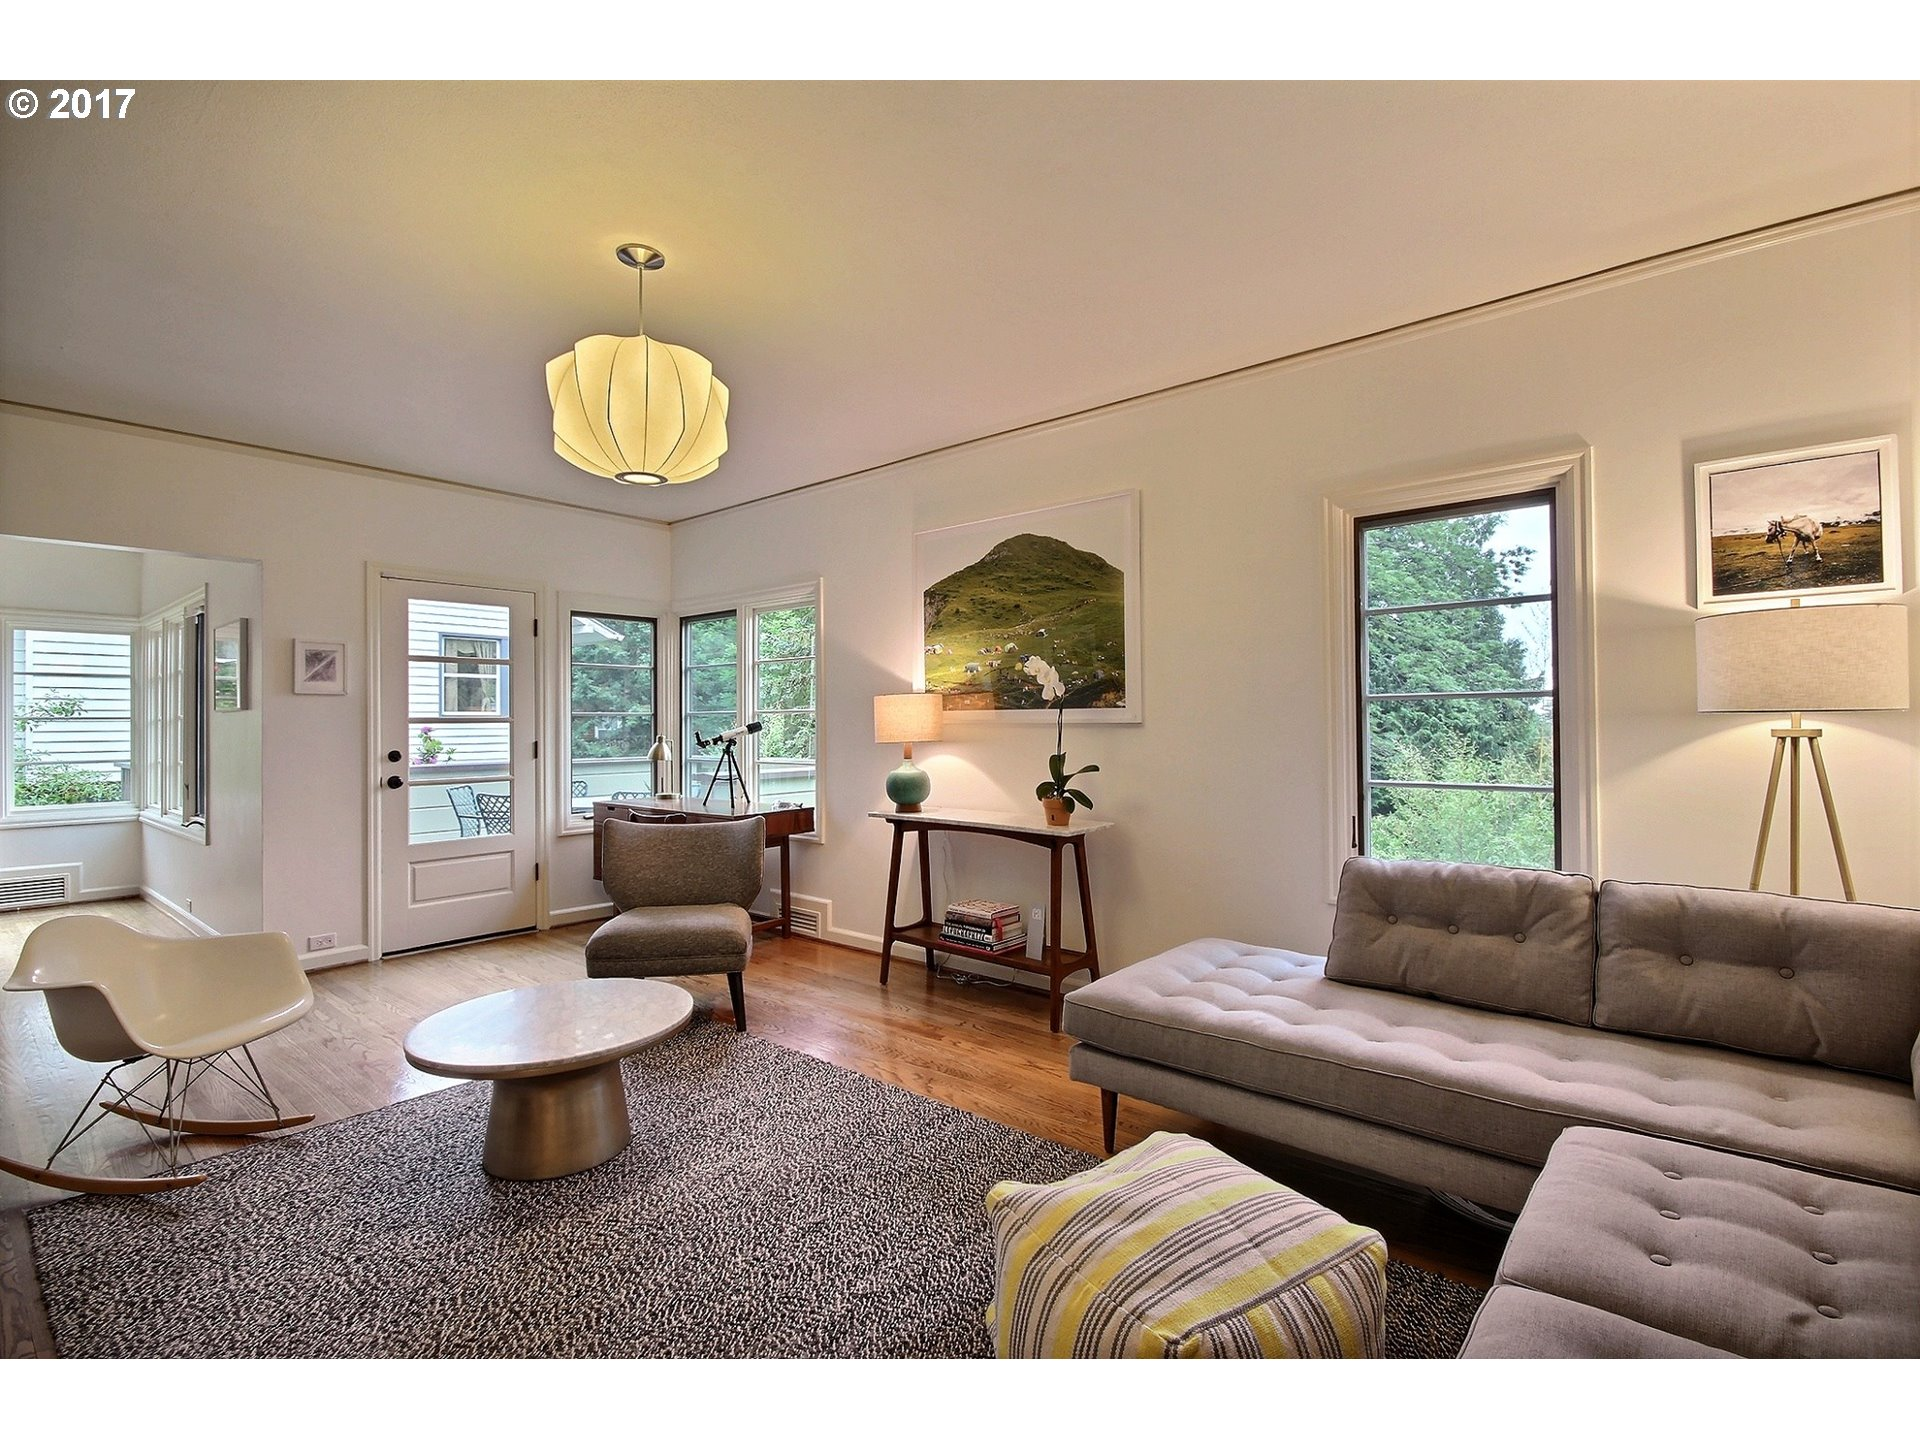 2581 sq. ft 4 bedrooms 3 bathrooms  House For Sale, Portland, OR